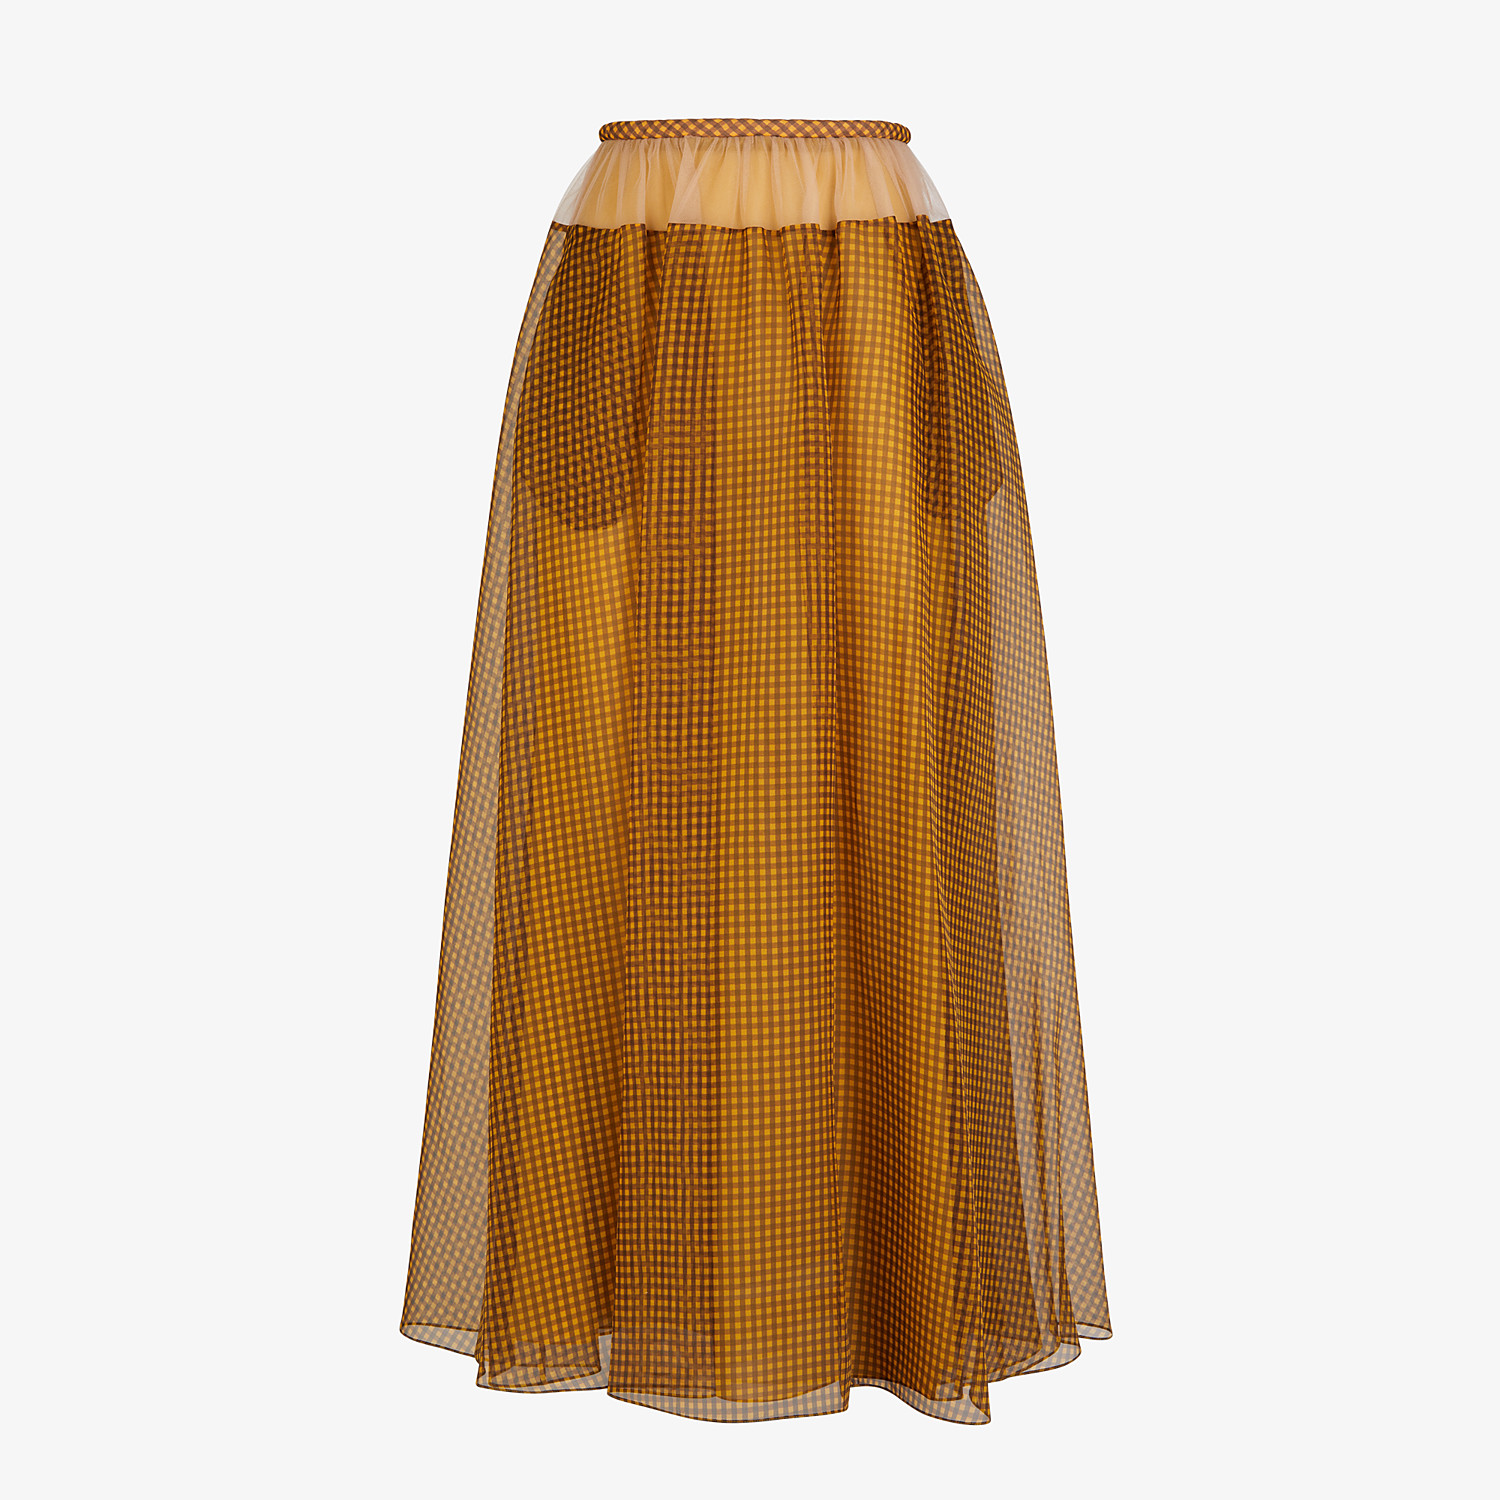 FENDI SKIRT - Organza Vichy skirt - view 1 detail